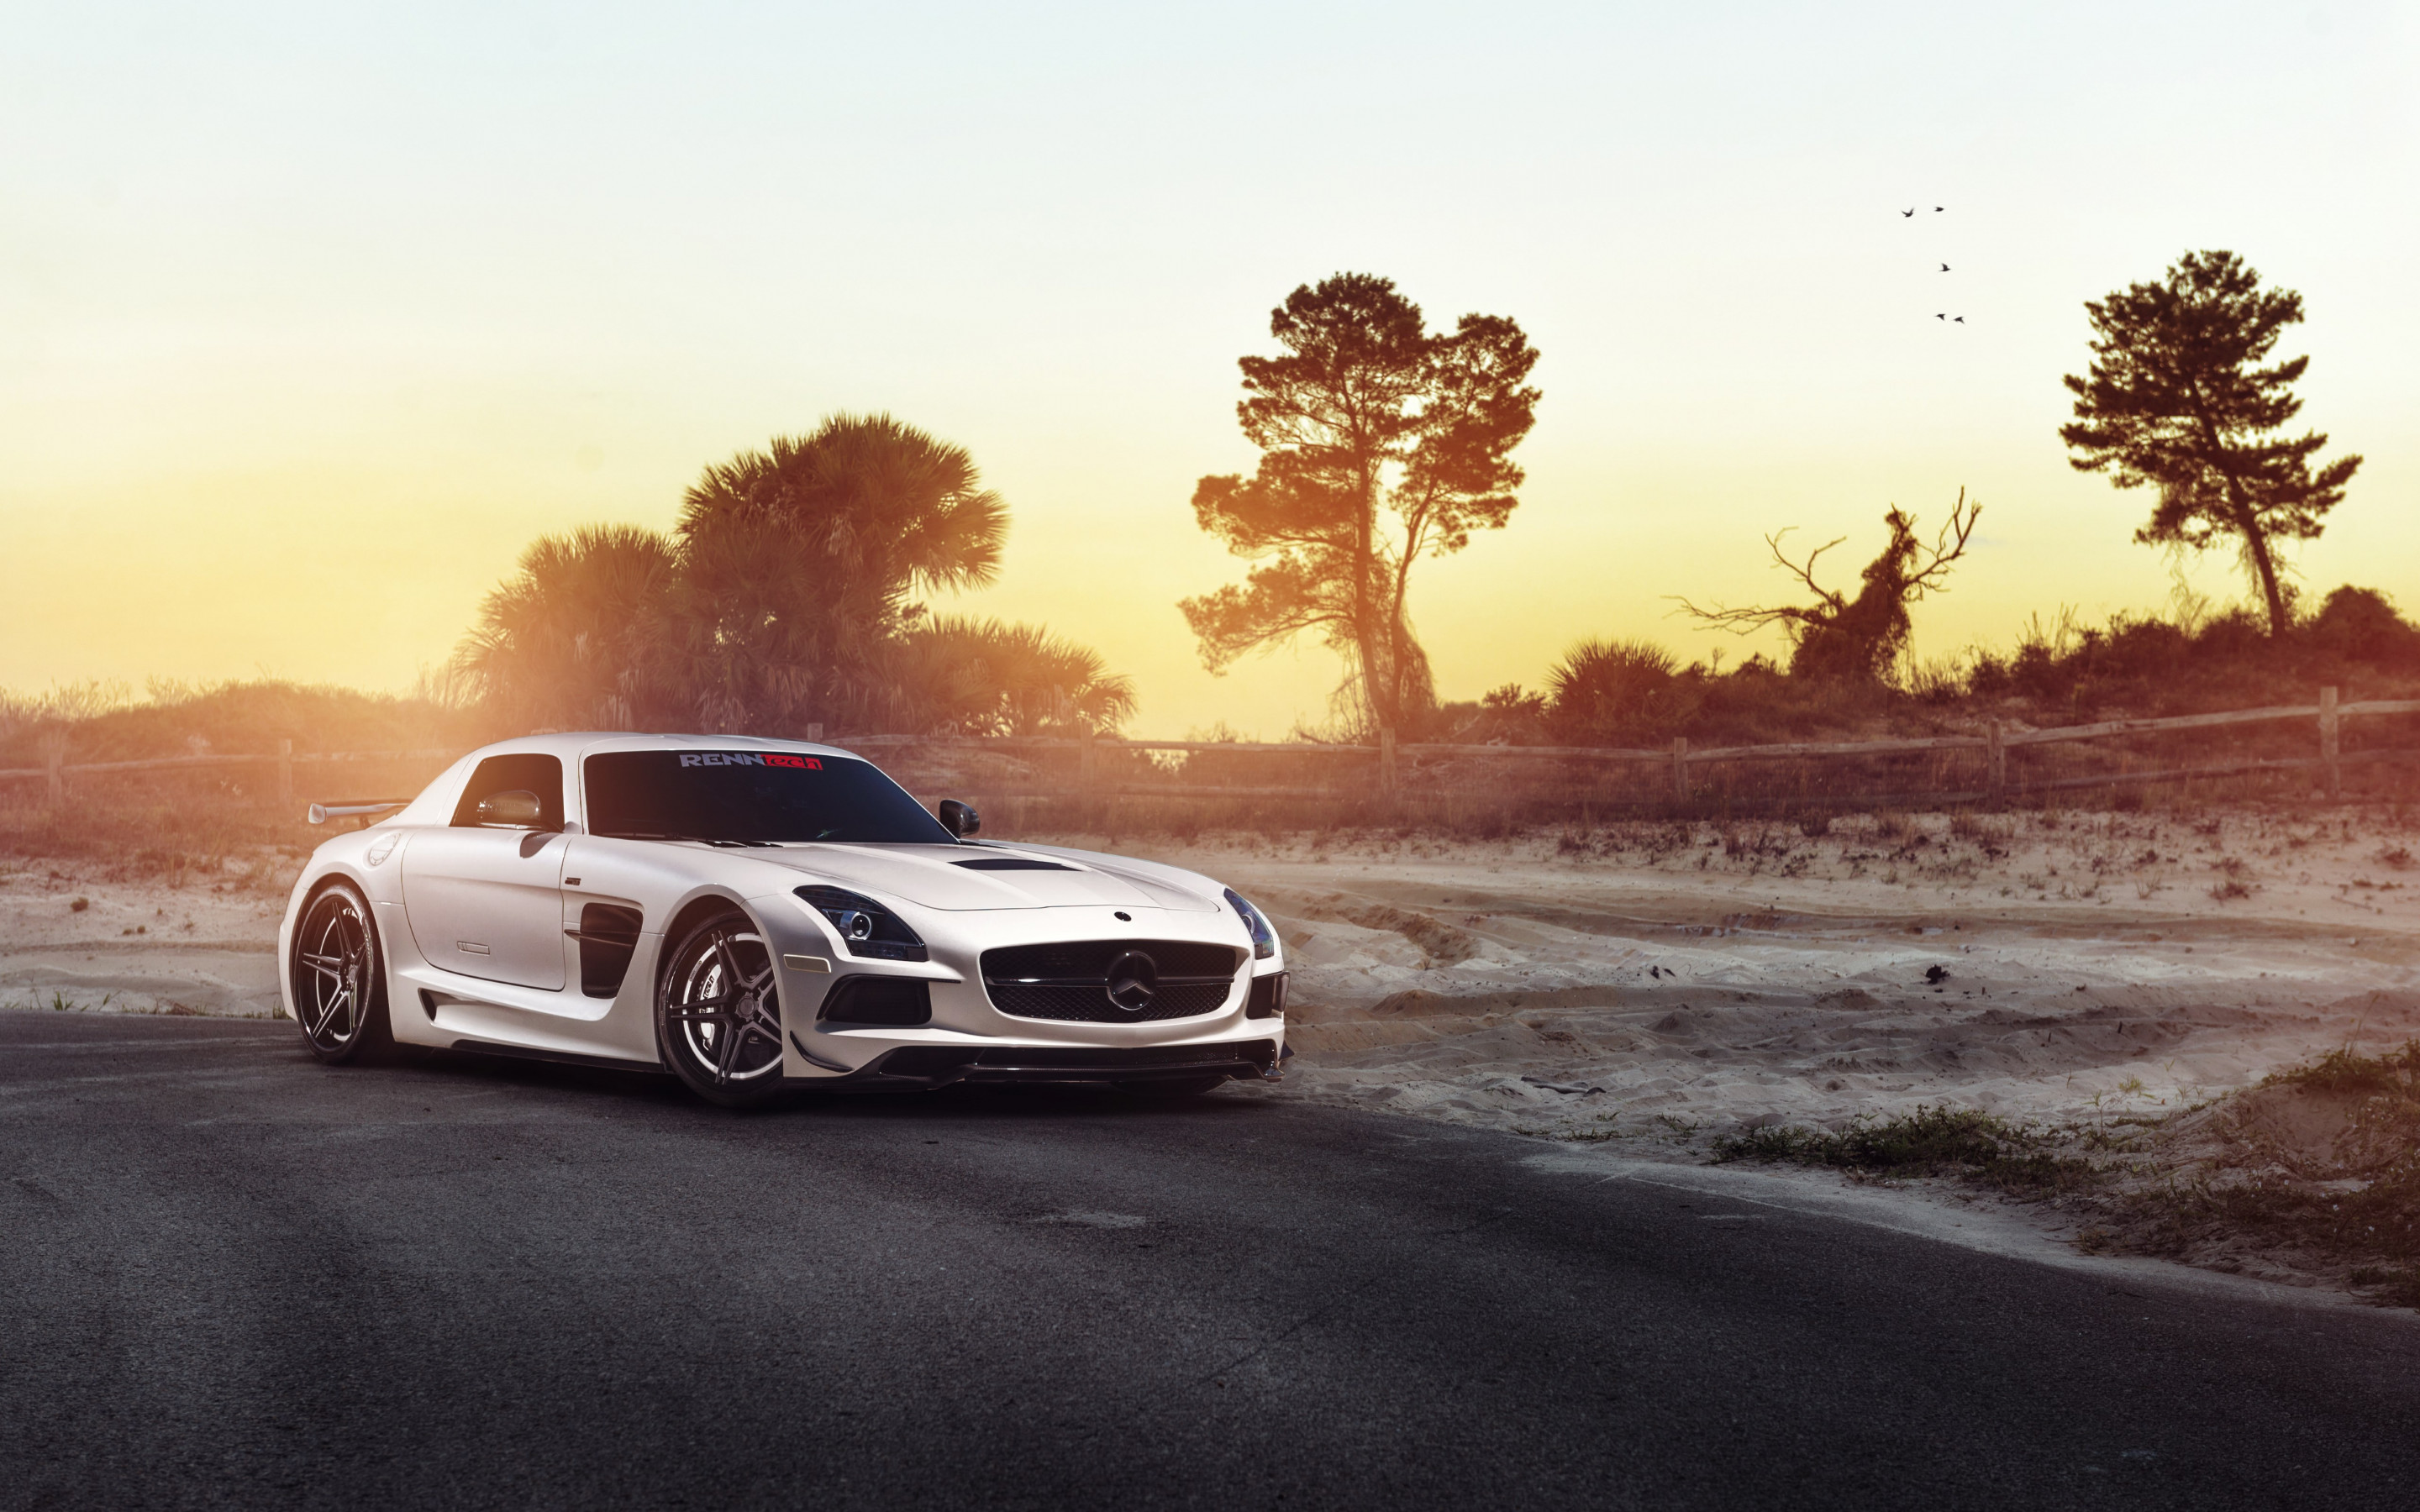 Mercedes SLS wallpaper 2880x1800